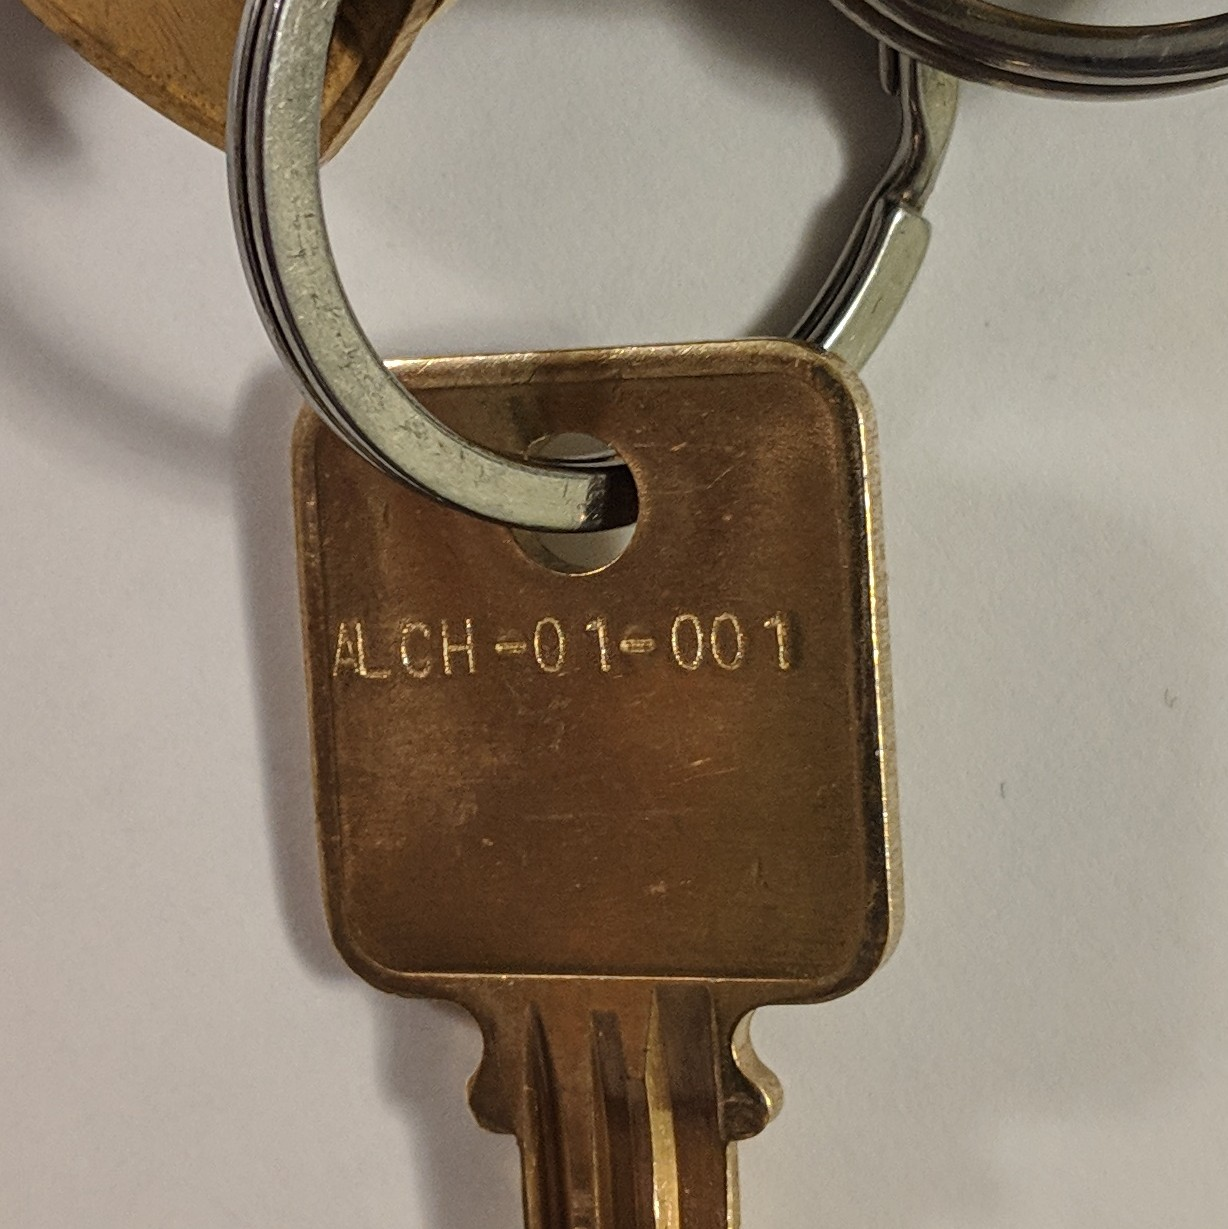 Restricted Key Systems - Keys People Can't Duplicate - Lock